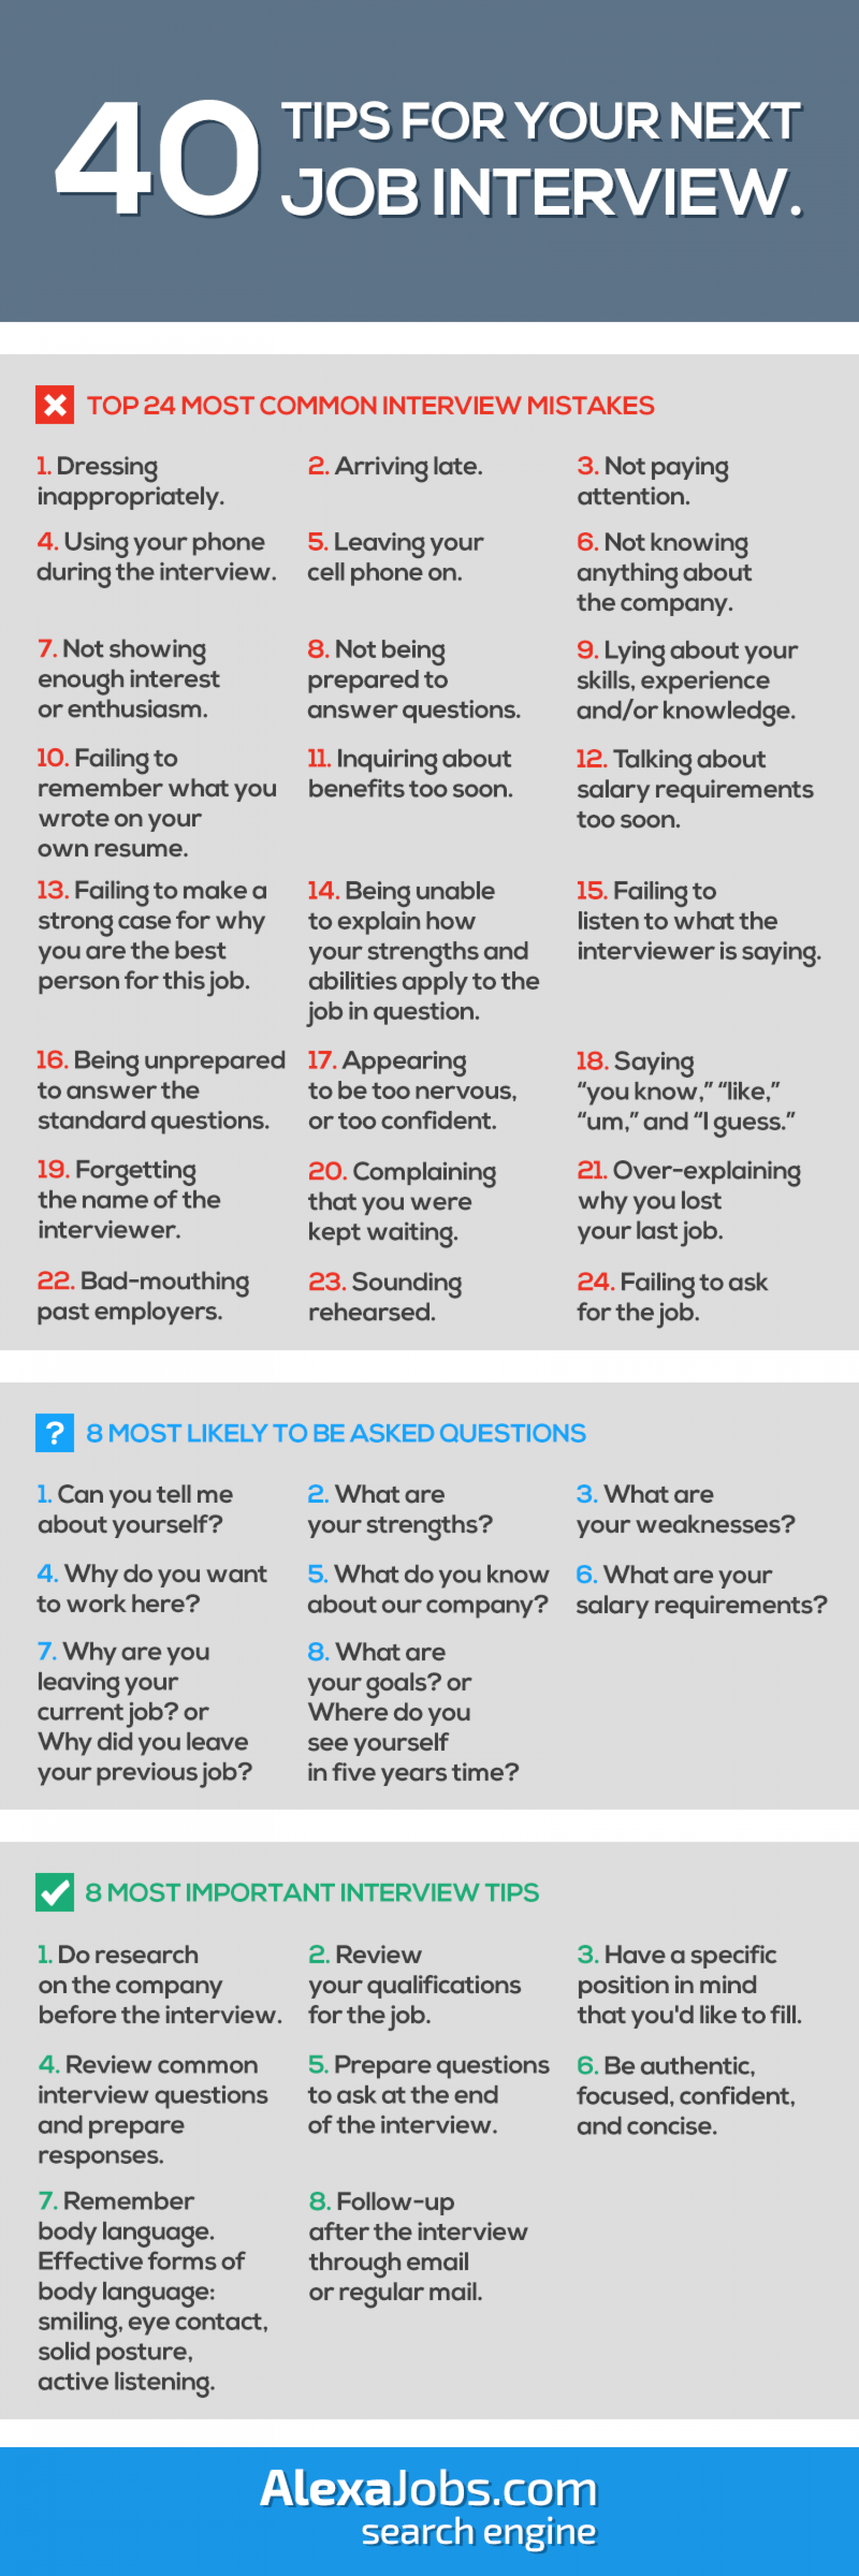 40 Tips For Your Next Job Interview! Infographic | Career ...